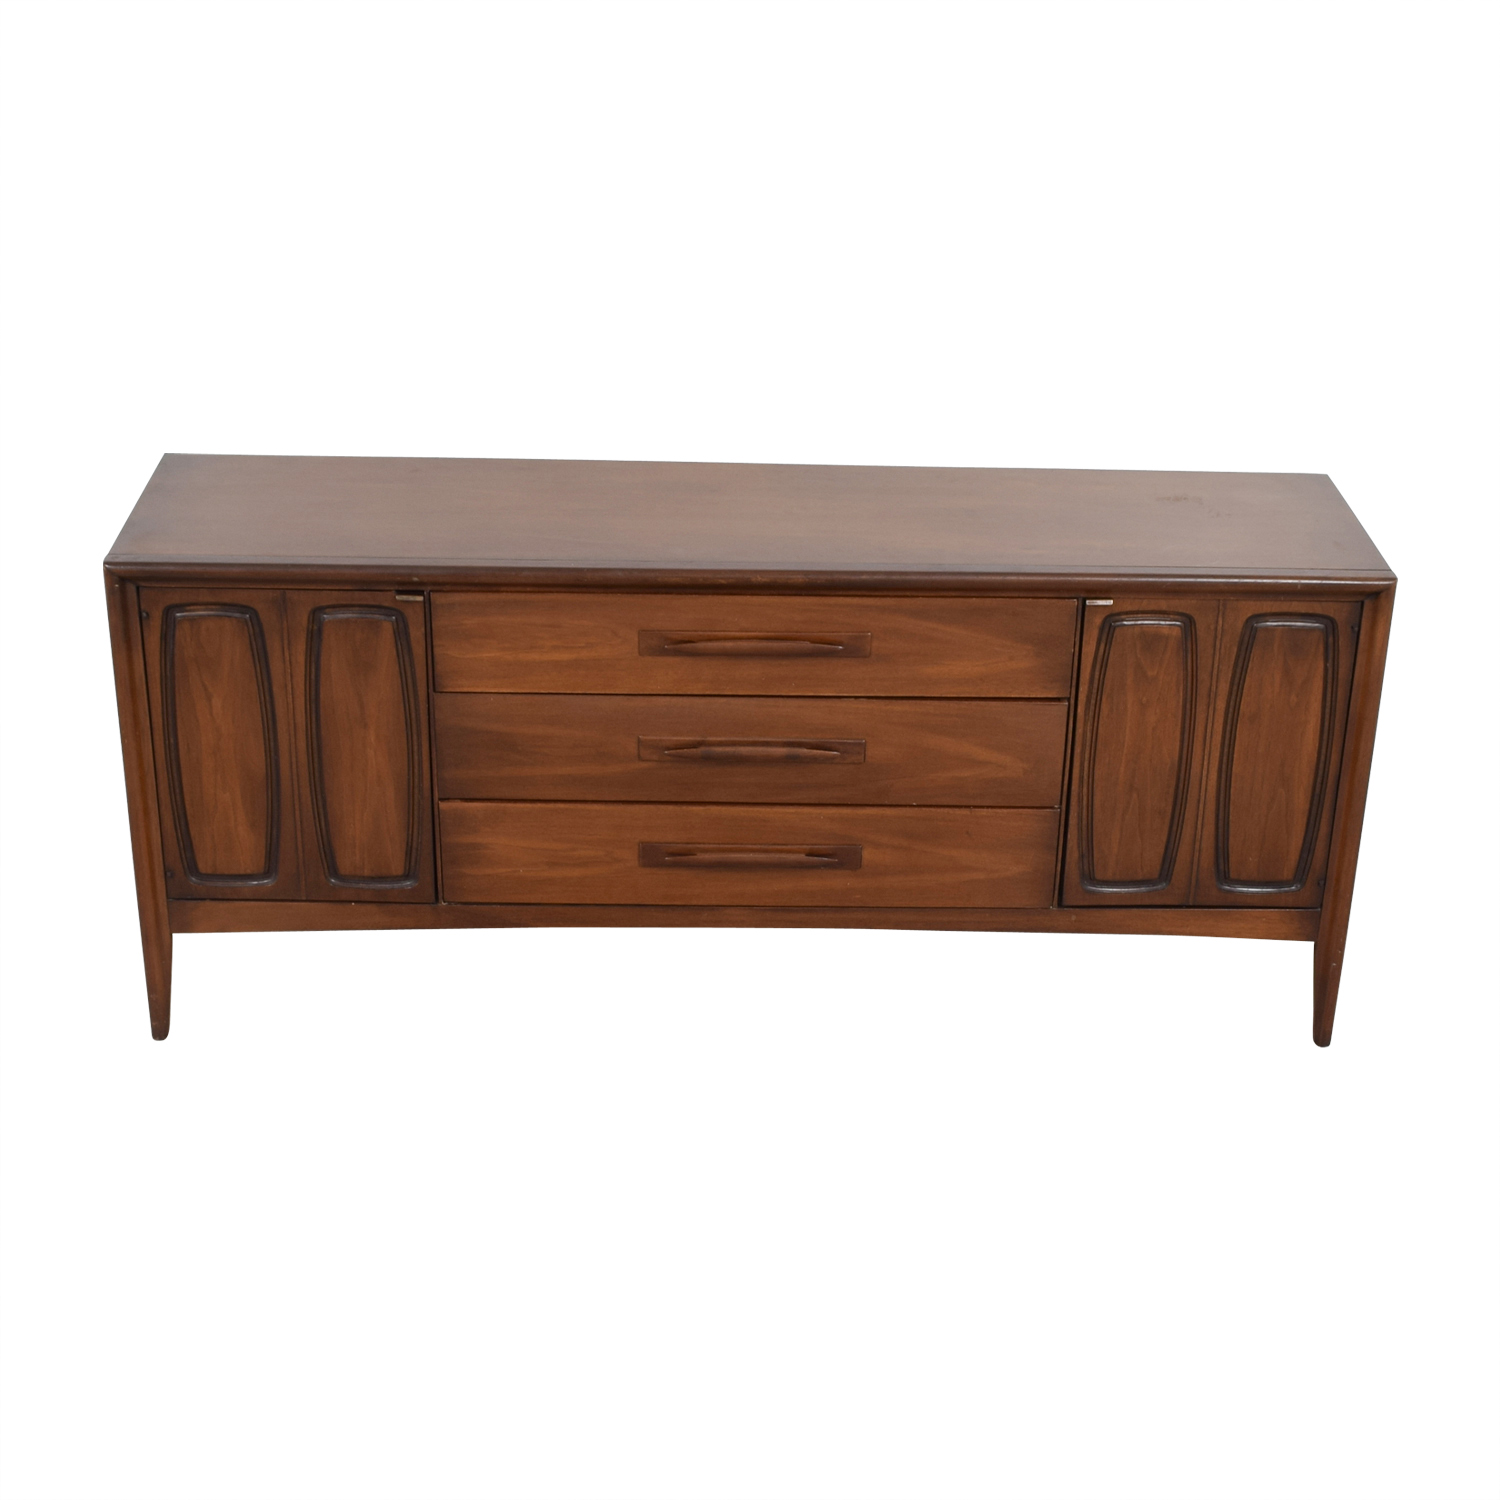 Broyhill Broyhill Vintage Emphasis Mid-Century Credenza or Media Console second hand